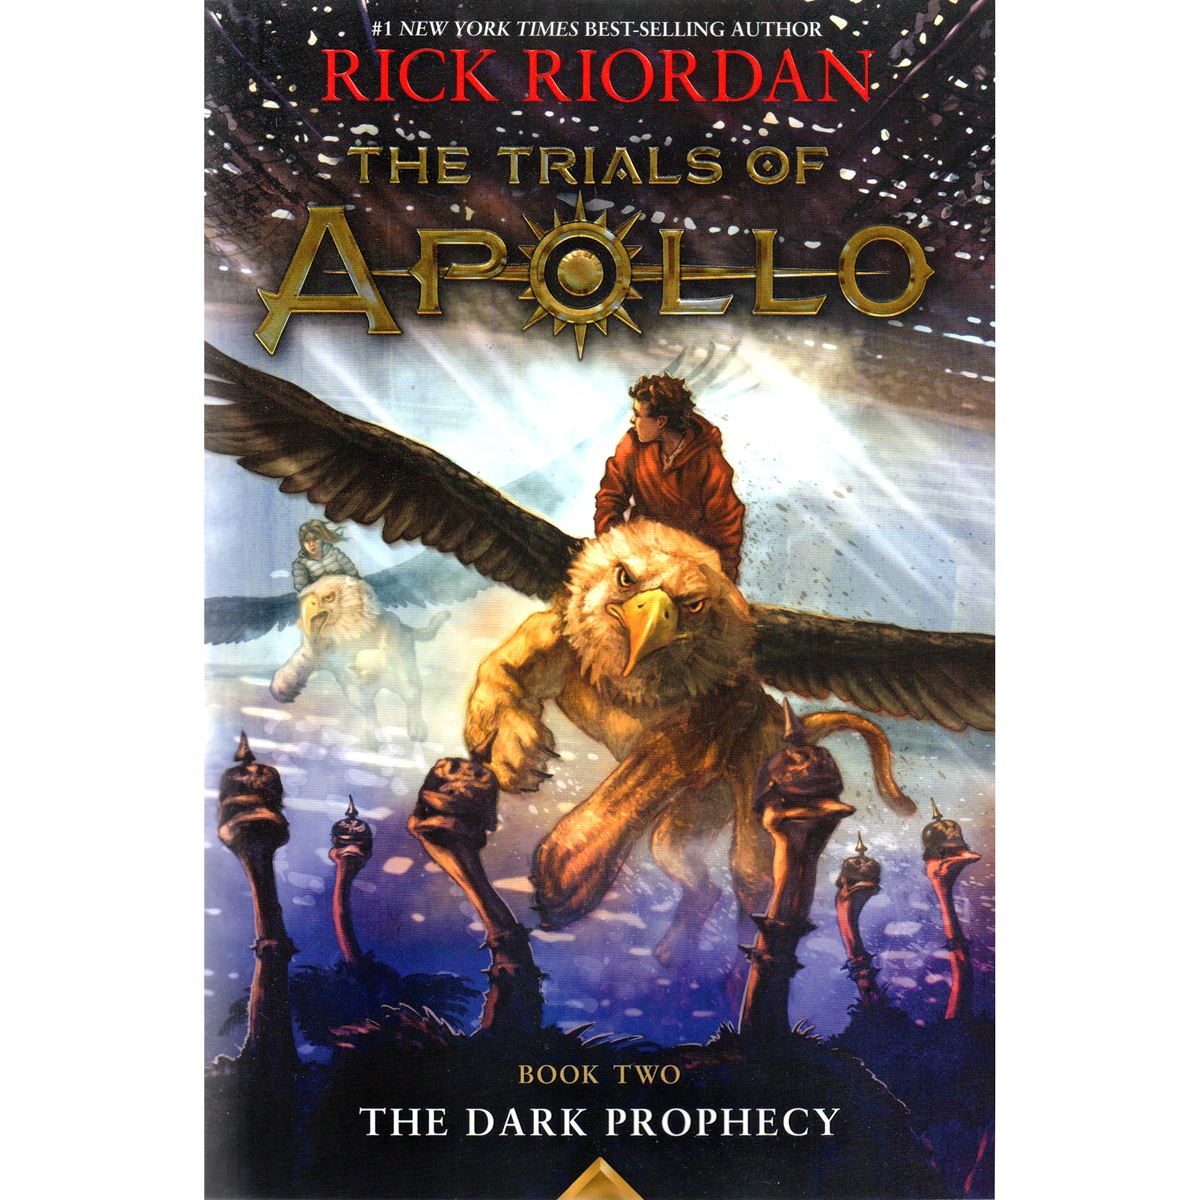 The dark prophecy: the trials of apollo, book two Libro - Sanborns